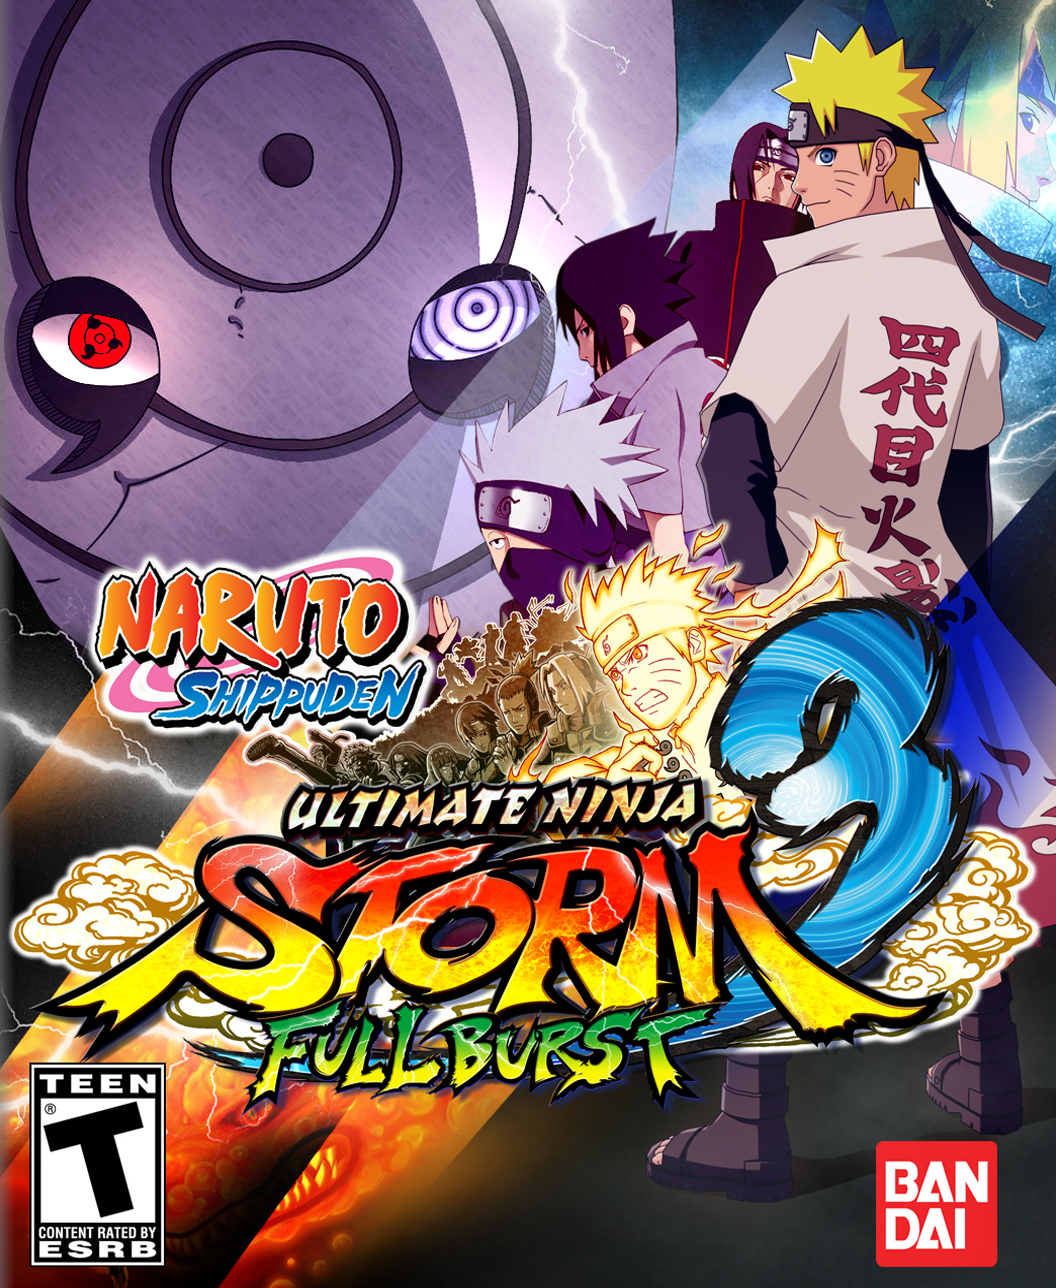 Cover NARUTO SHIPPUDEN: Ultimate Ninja STORM 3 Full Burst (2013) РС | RePack от R.G. Механики